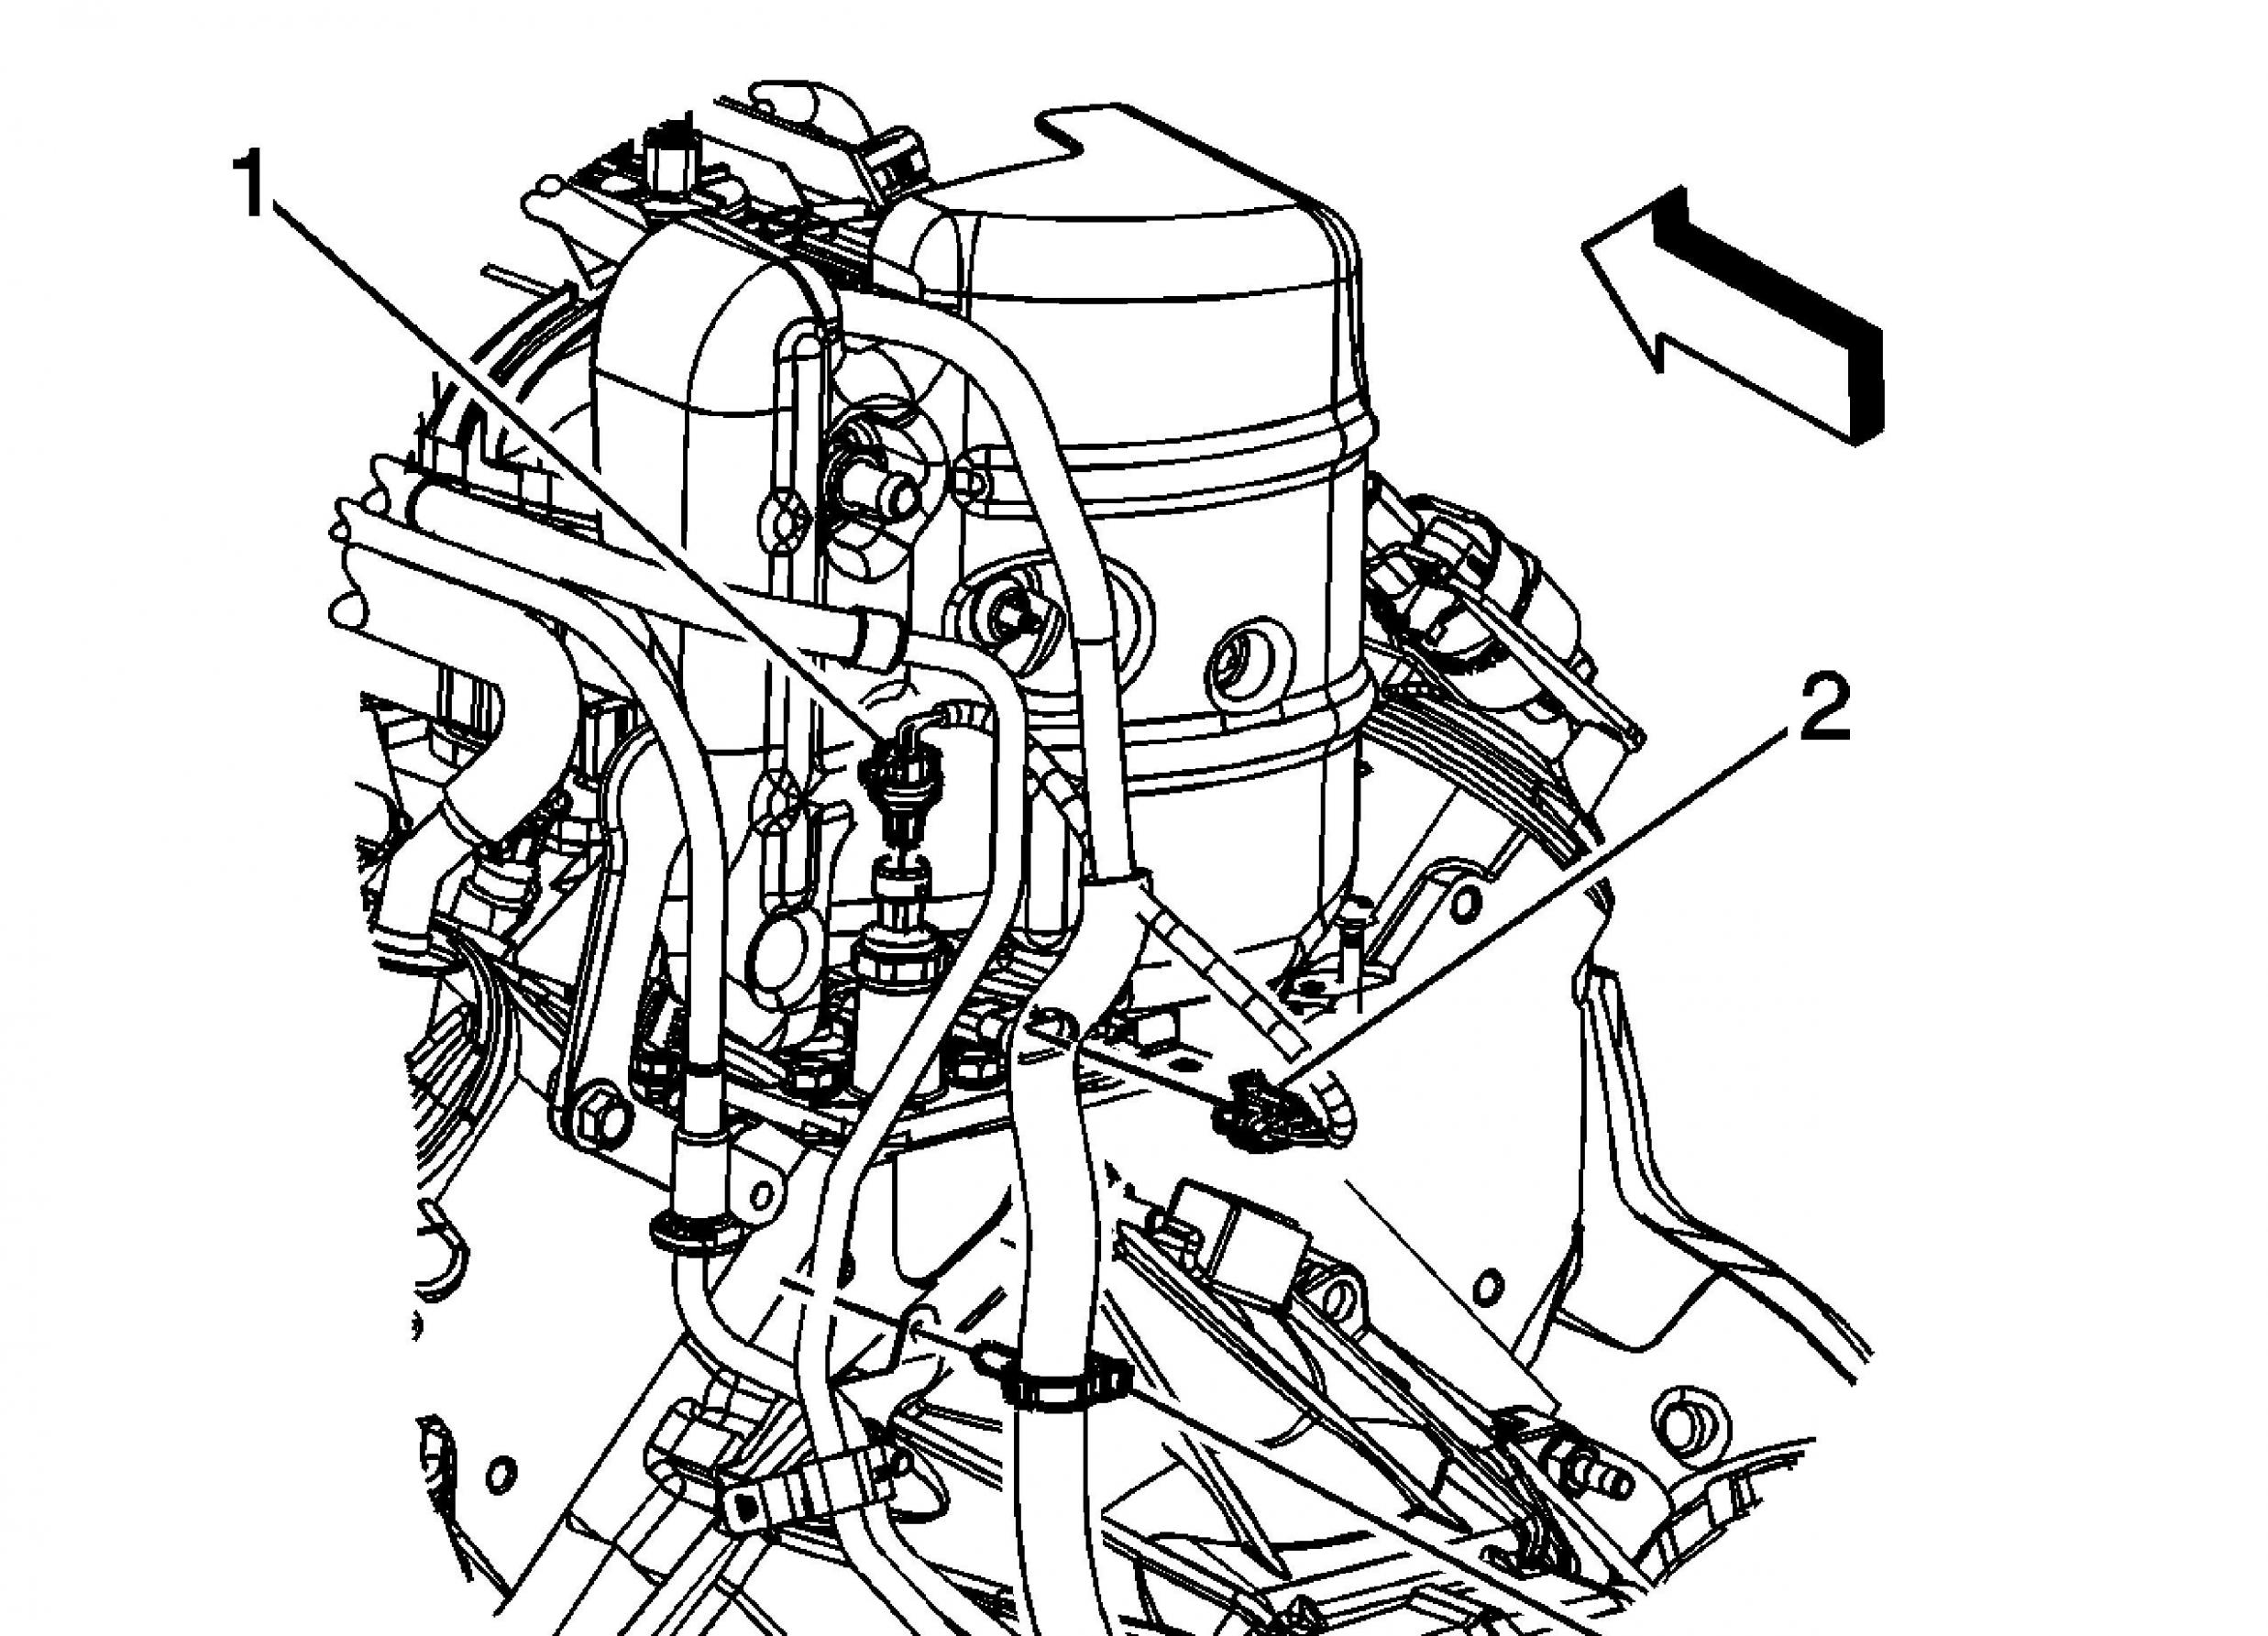 09 Chevy Cobalt Engine Diagram